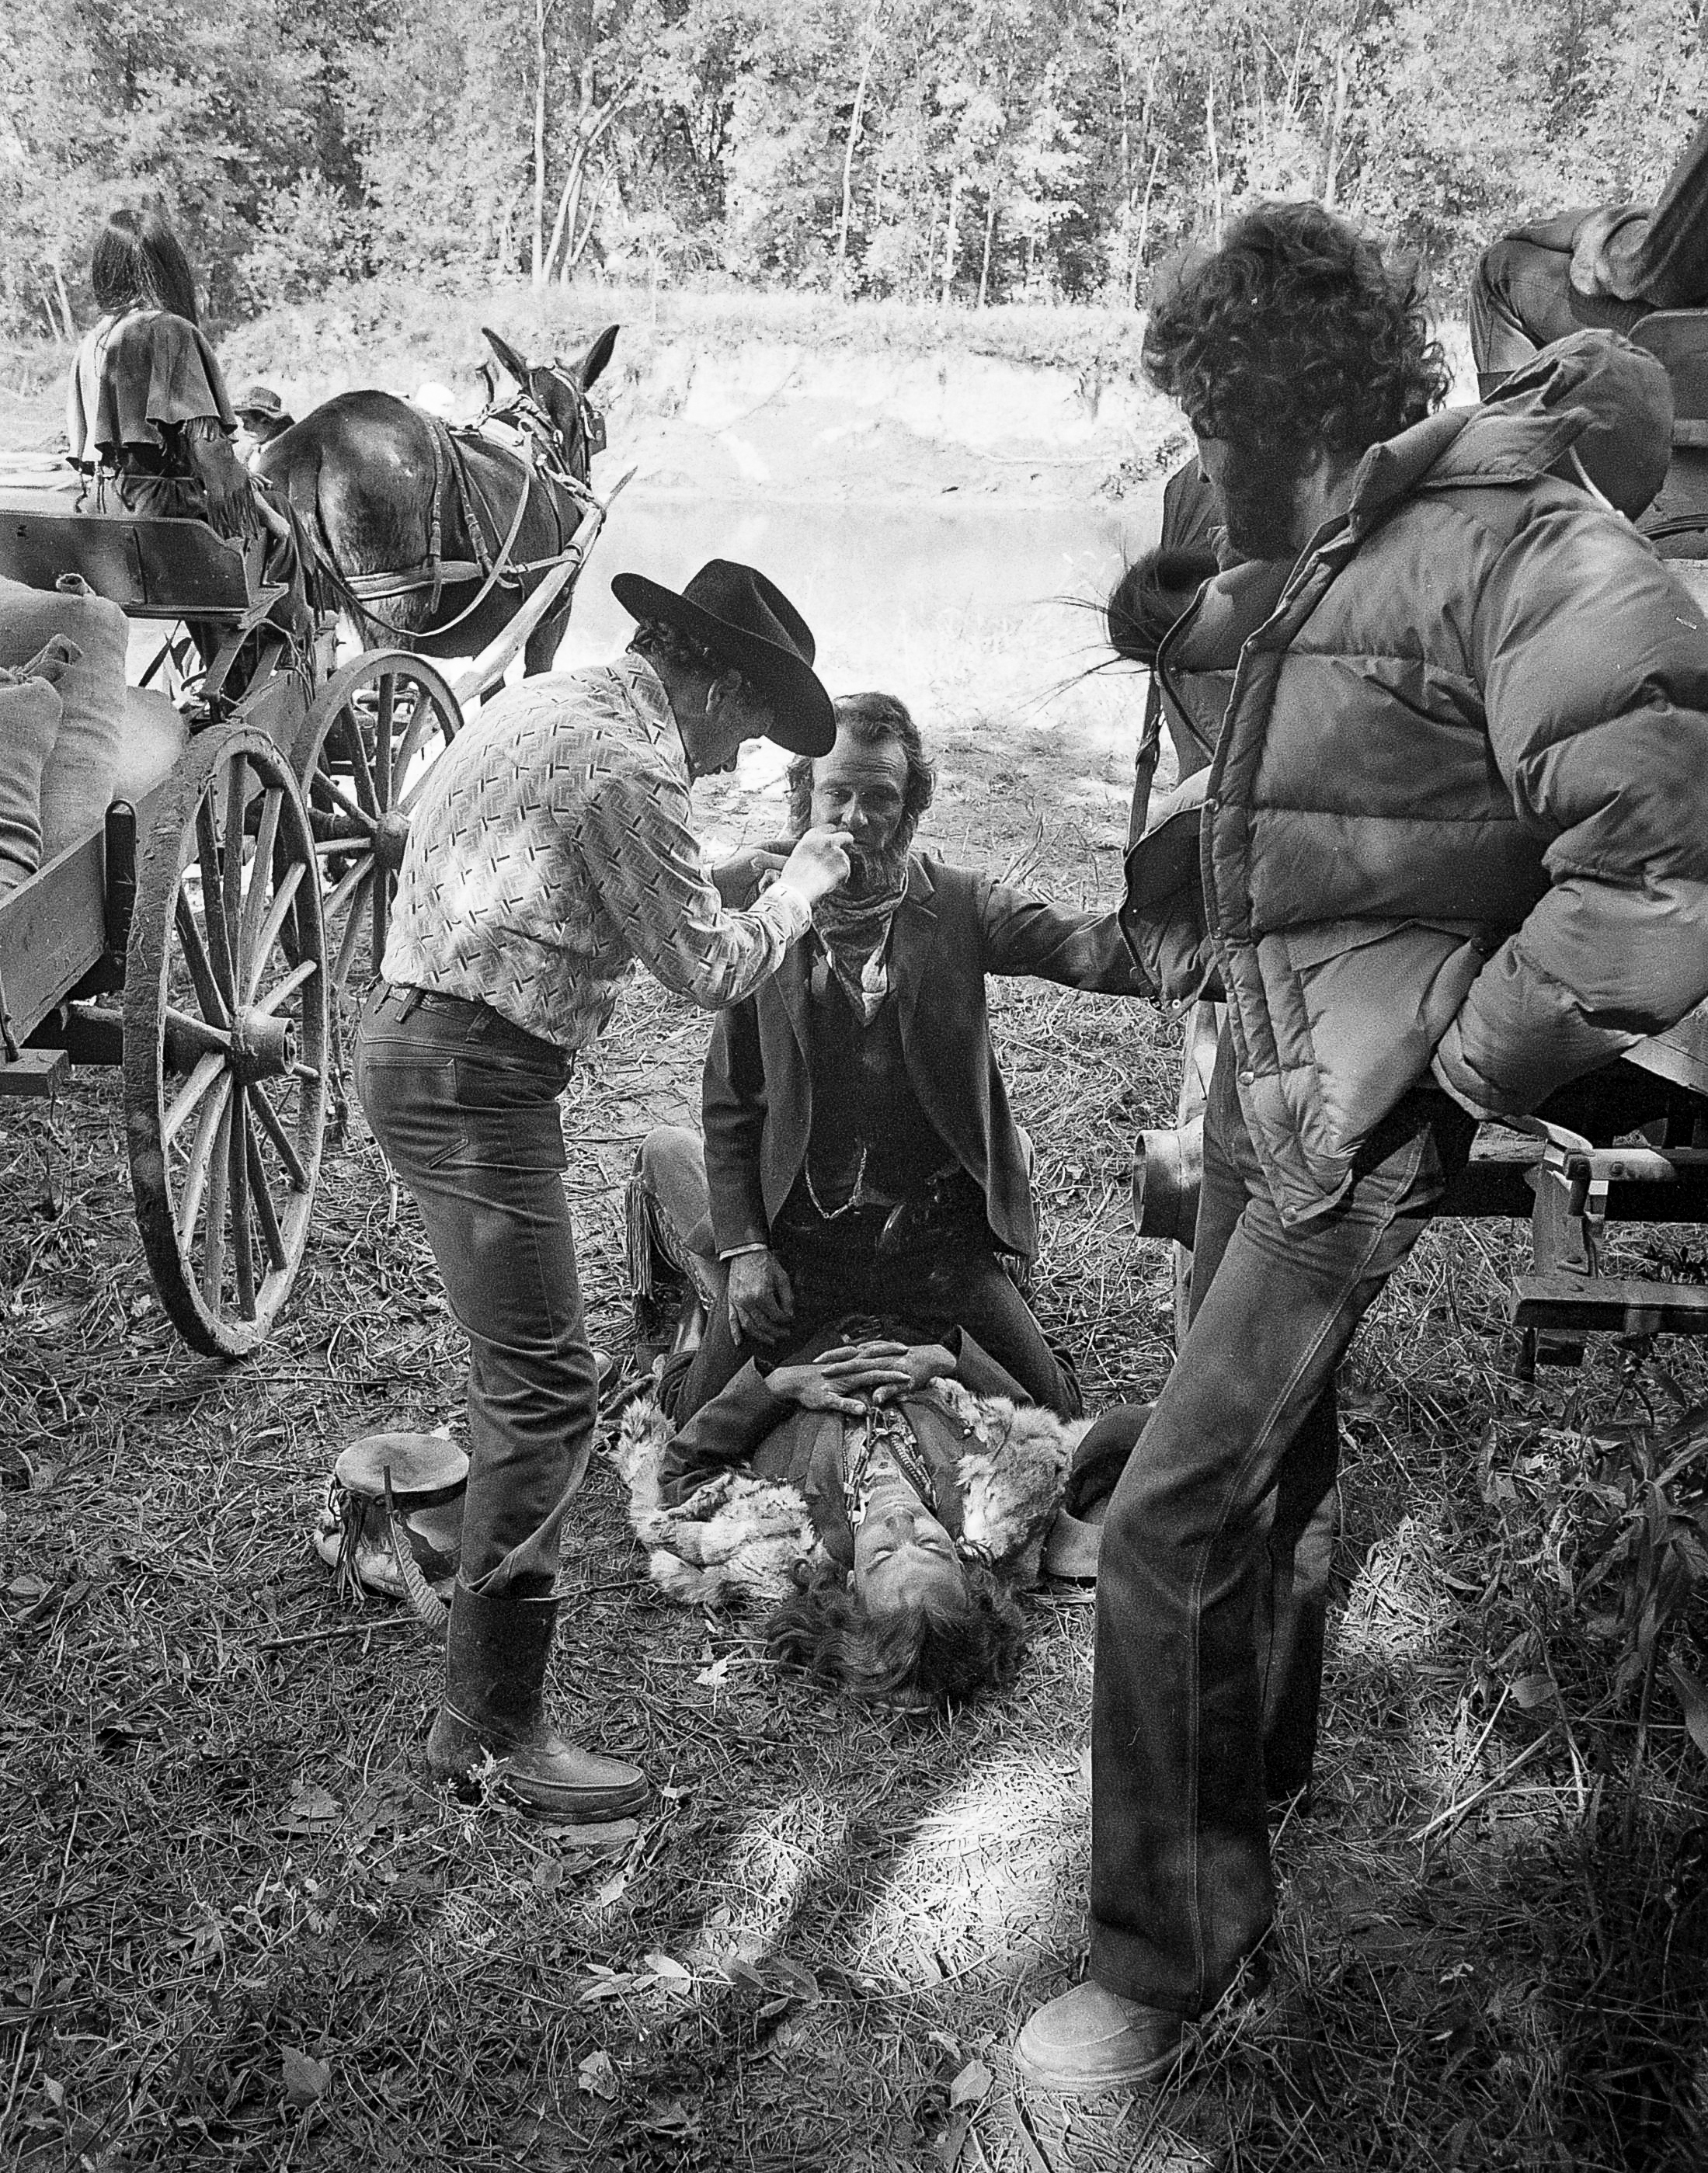 """A makeup adjustment for actor Jerry Hardin during filming for the television mini series """"The Chisholms"""" at New Salem State Historic Site, October 2, 1978. File/Bill Hagen/The State Journal-Register"""